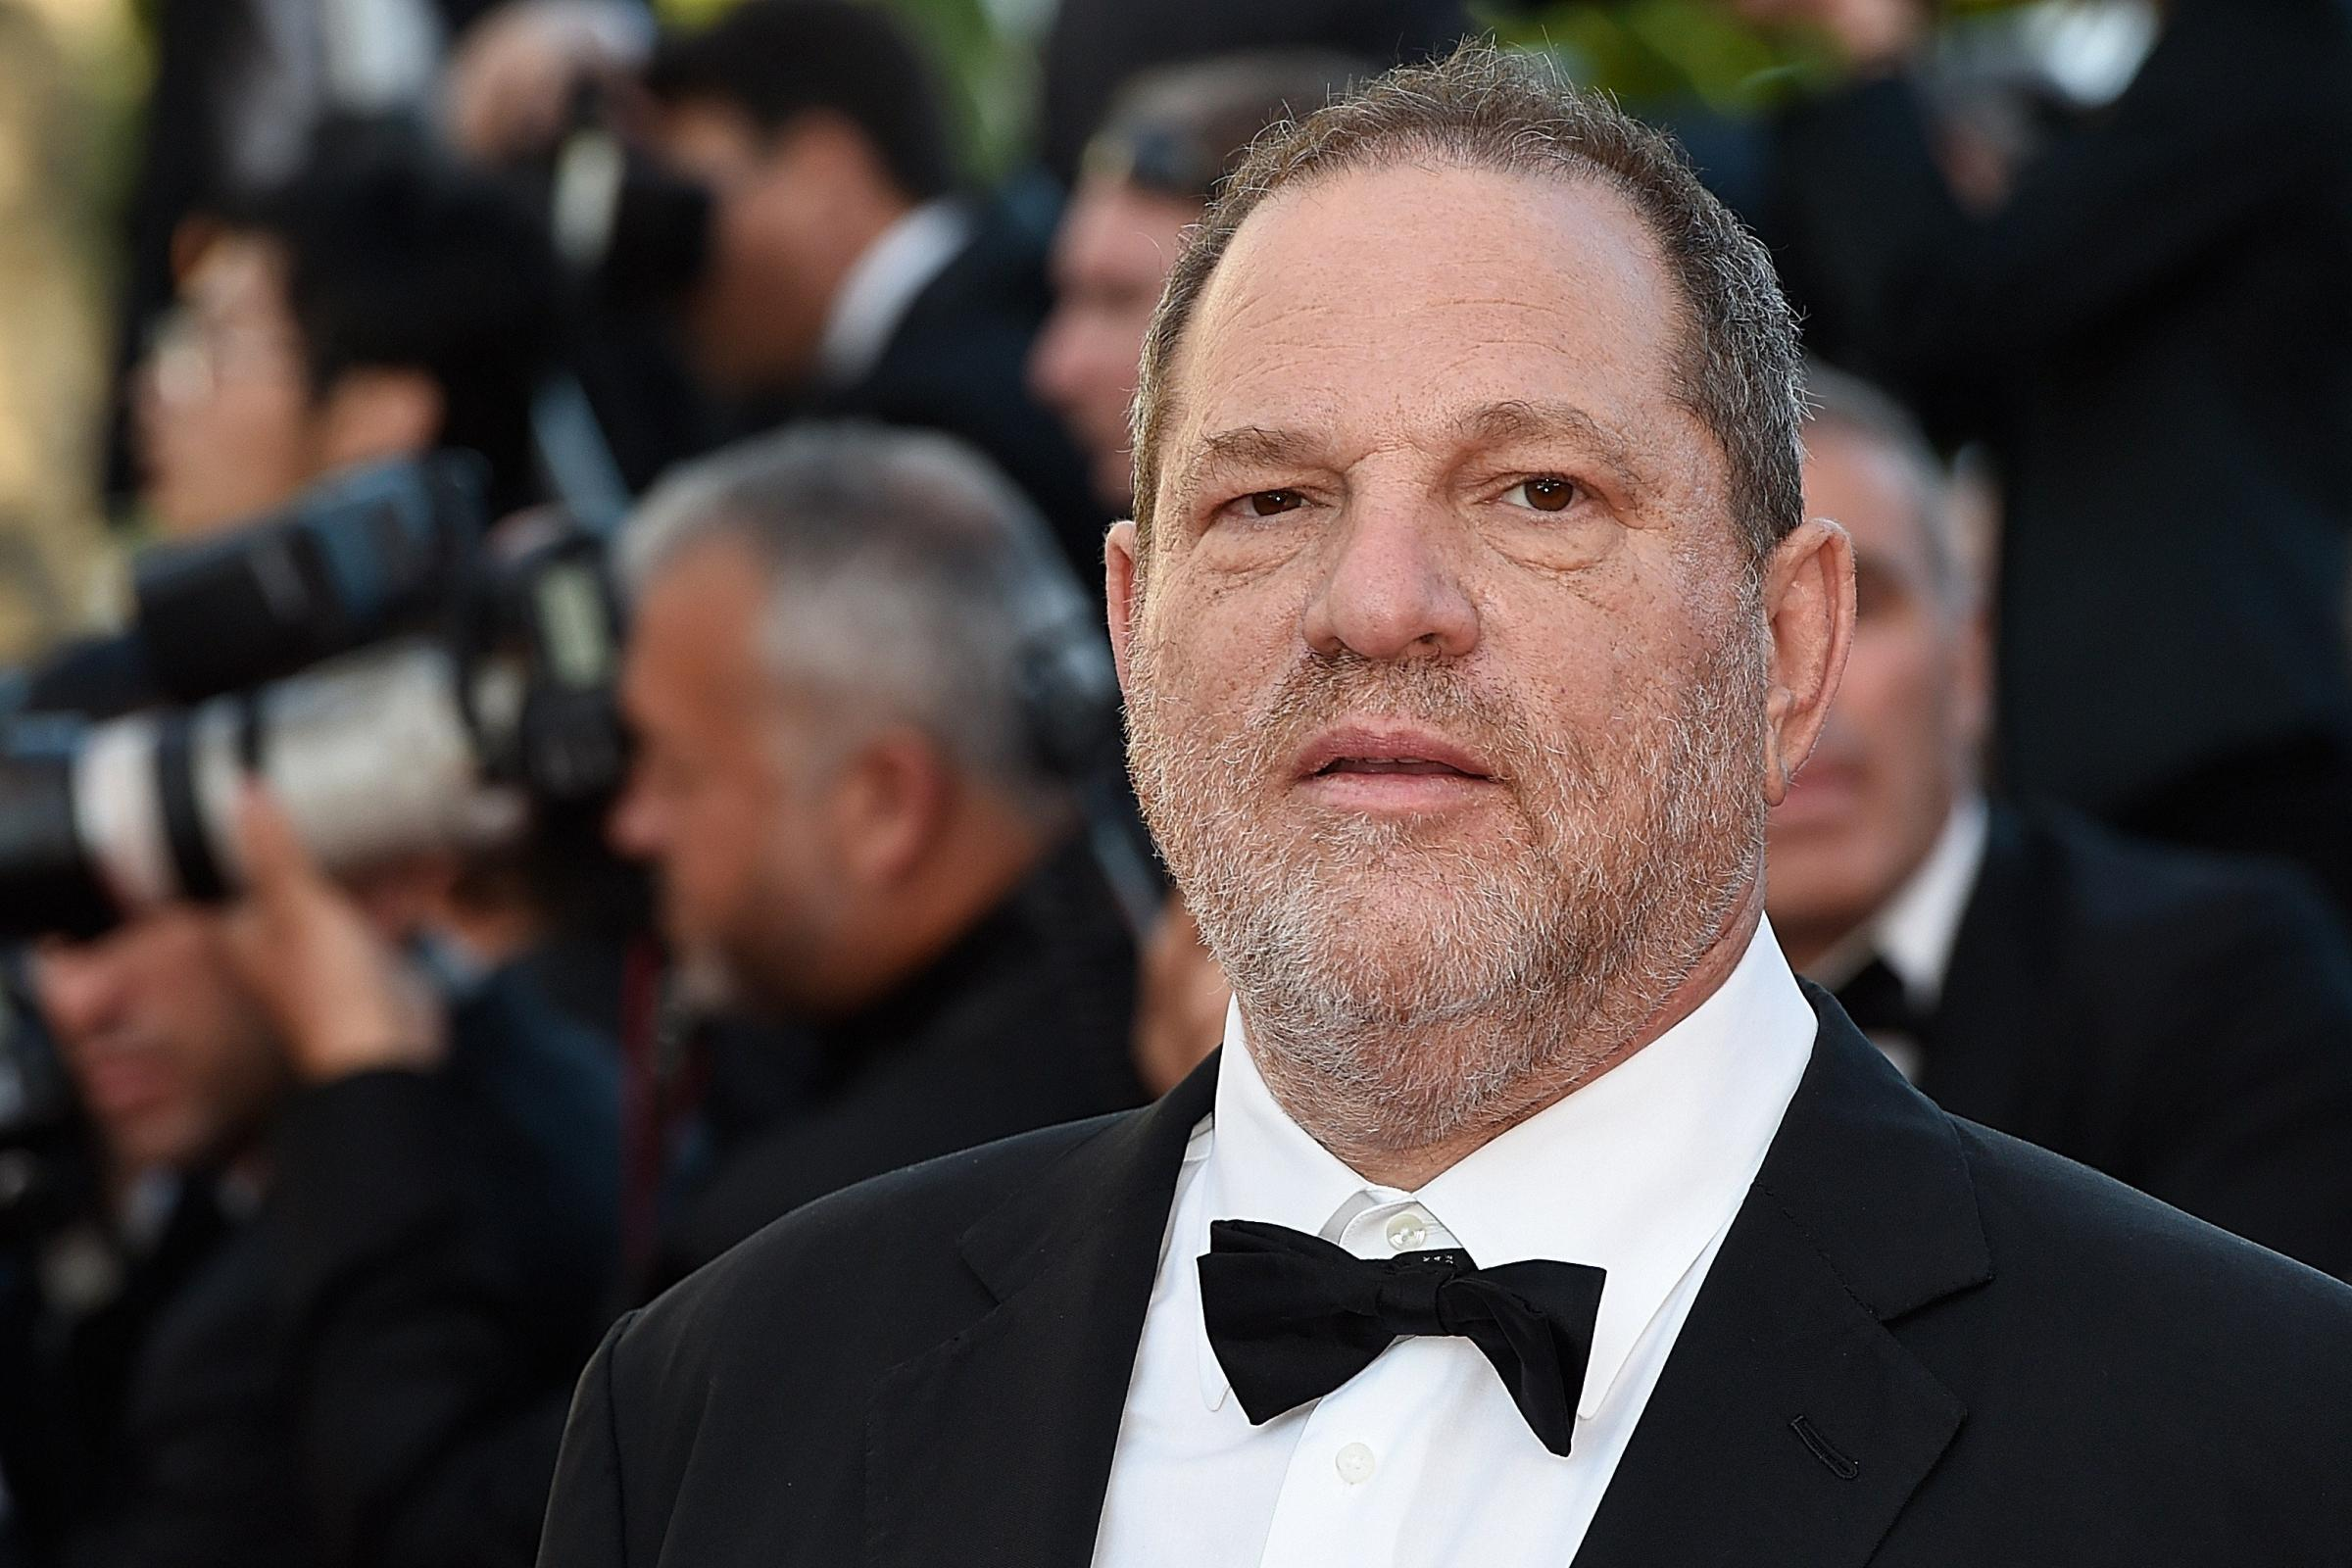 Since the revelations about Harvey Weinstein's behaviour, an informal etiquette has arisen and women have learned of the power of whispers